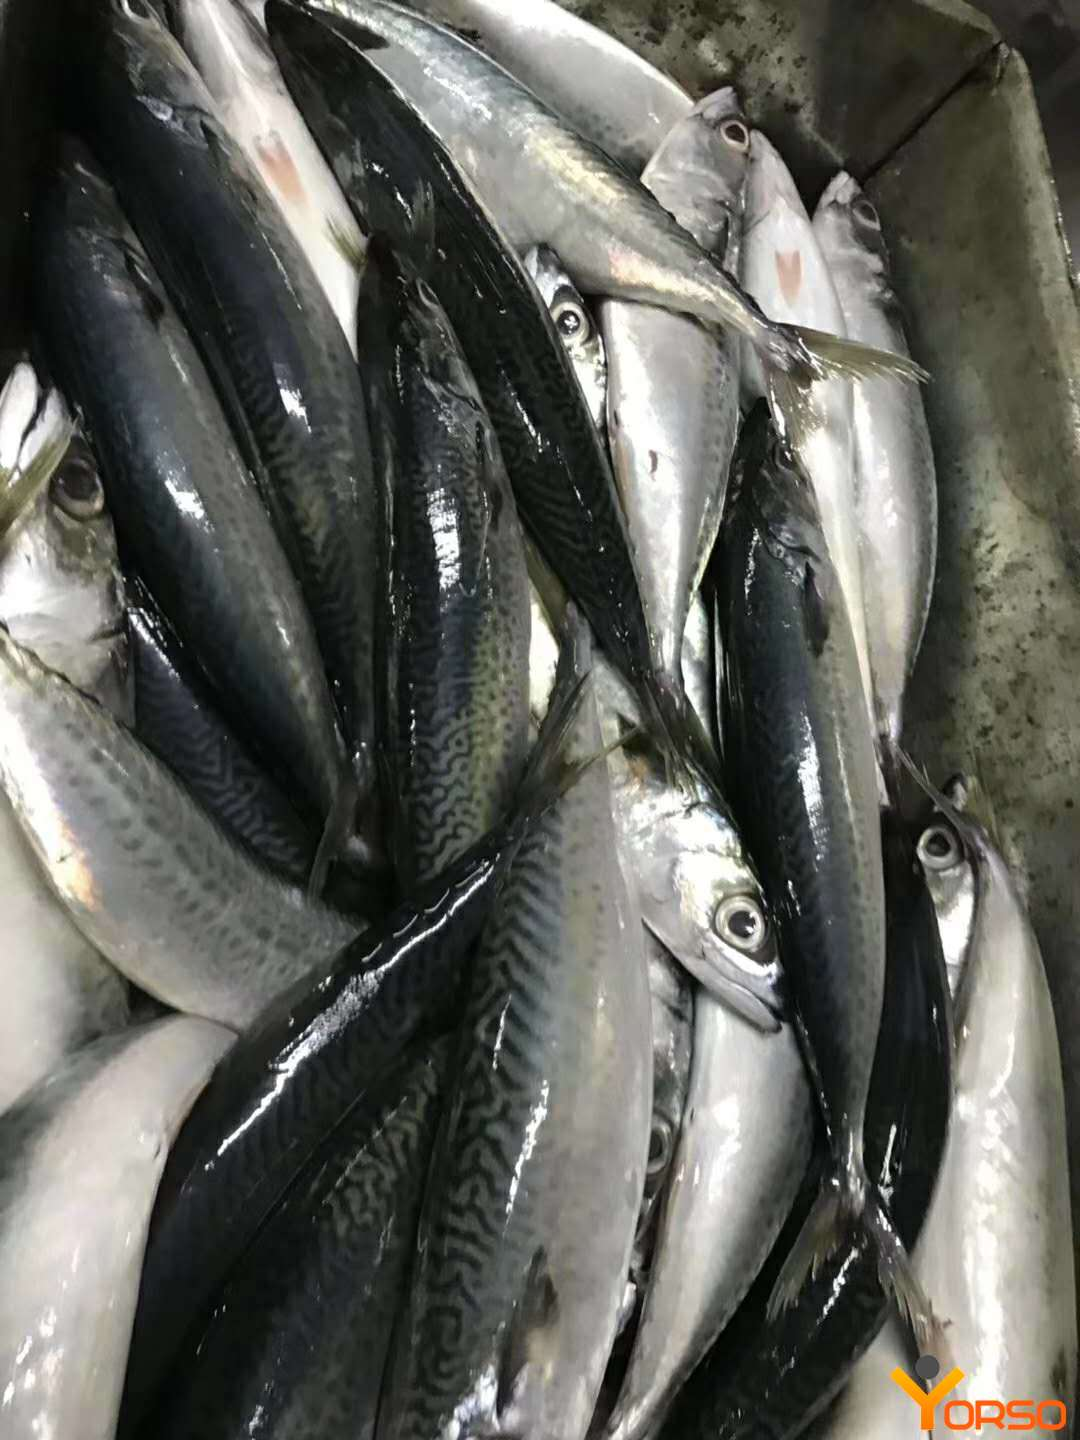 Mackerel, HP, 100-200, 95% net weight, BQF, 1/10